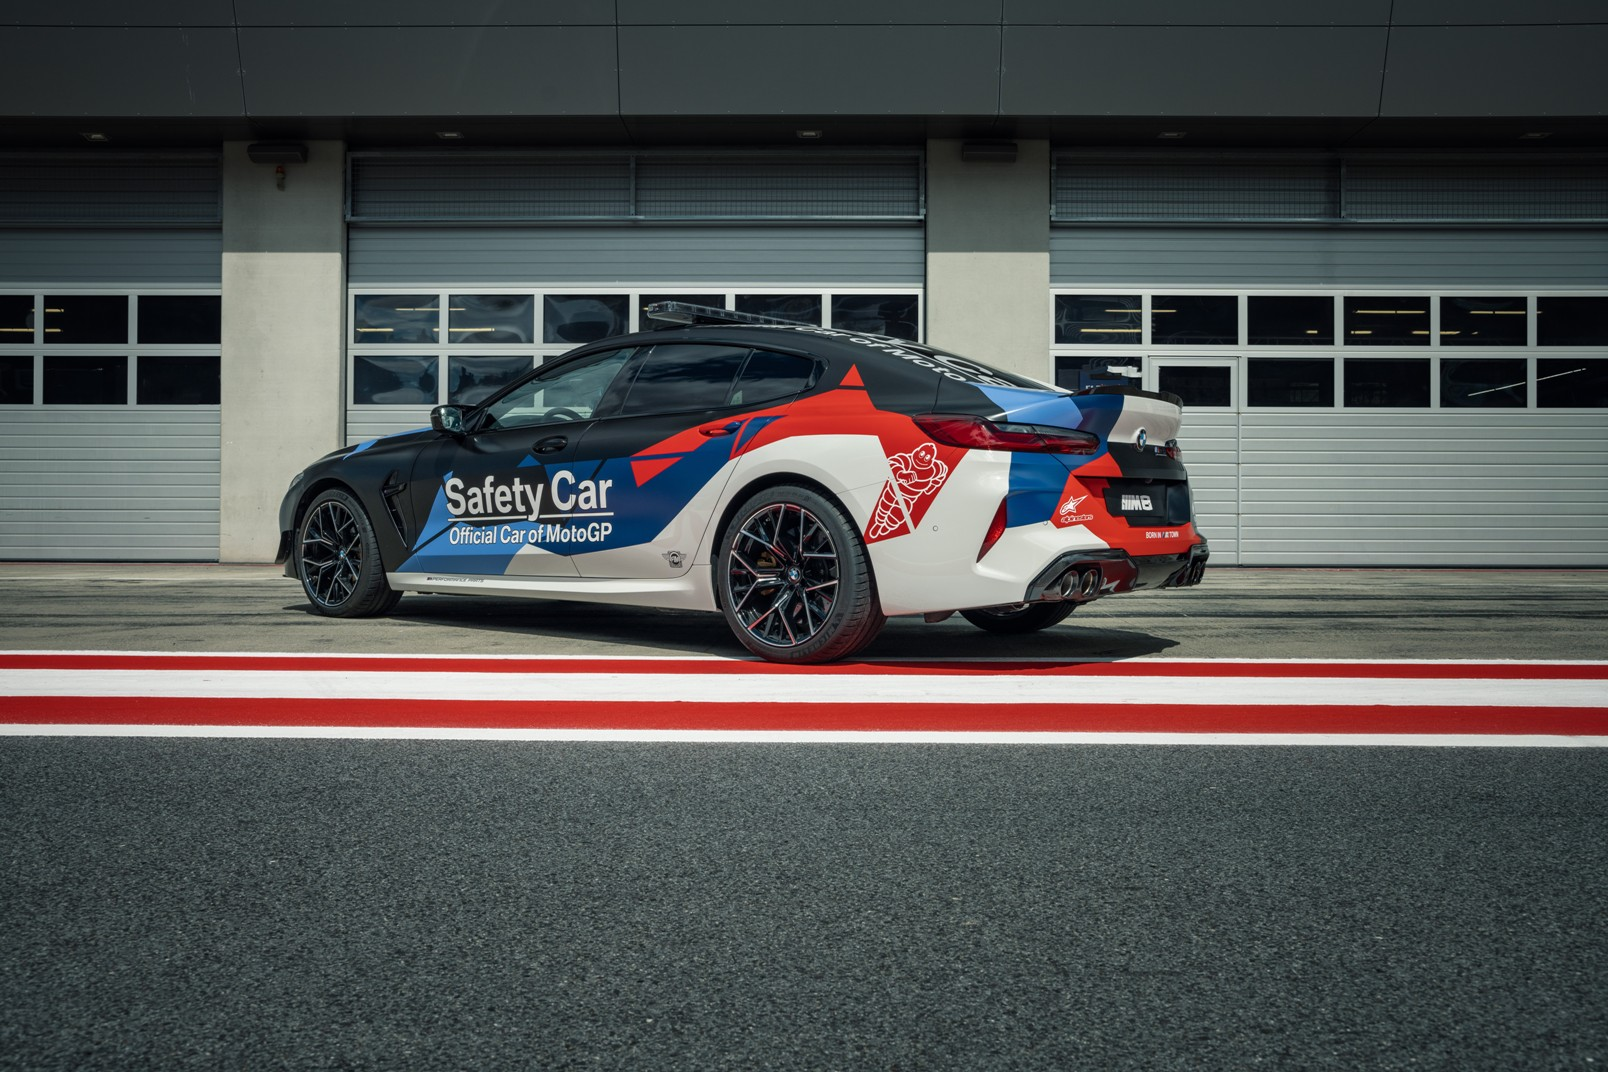 Bmw M8 Gran Coupe Safety Car (5)